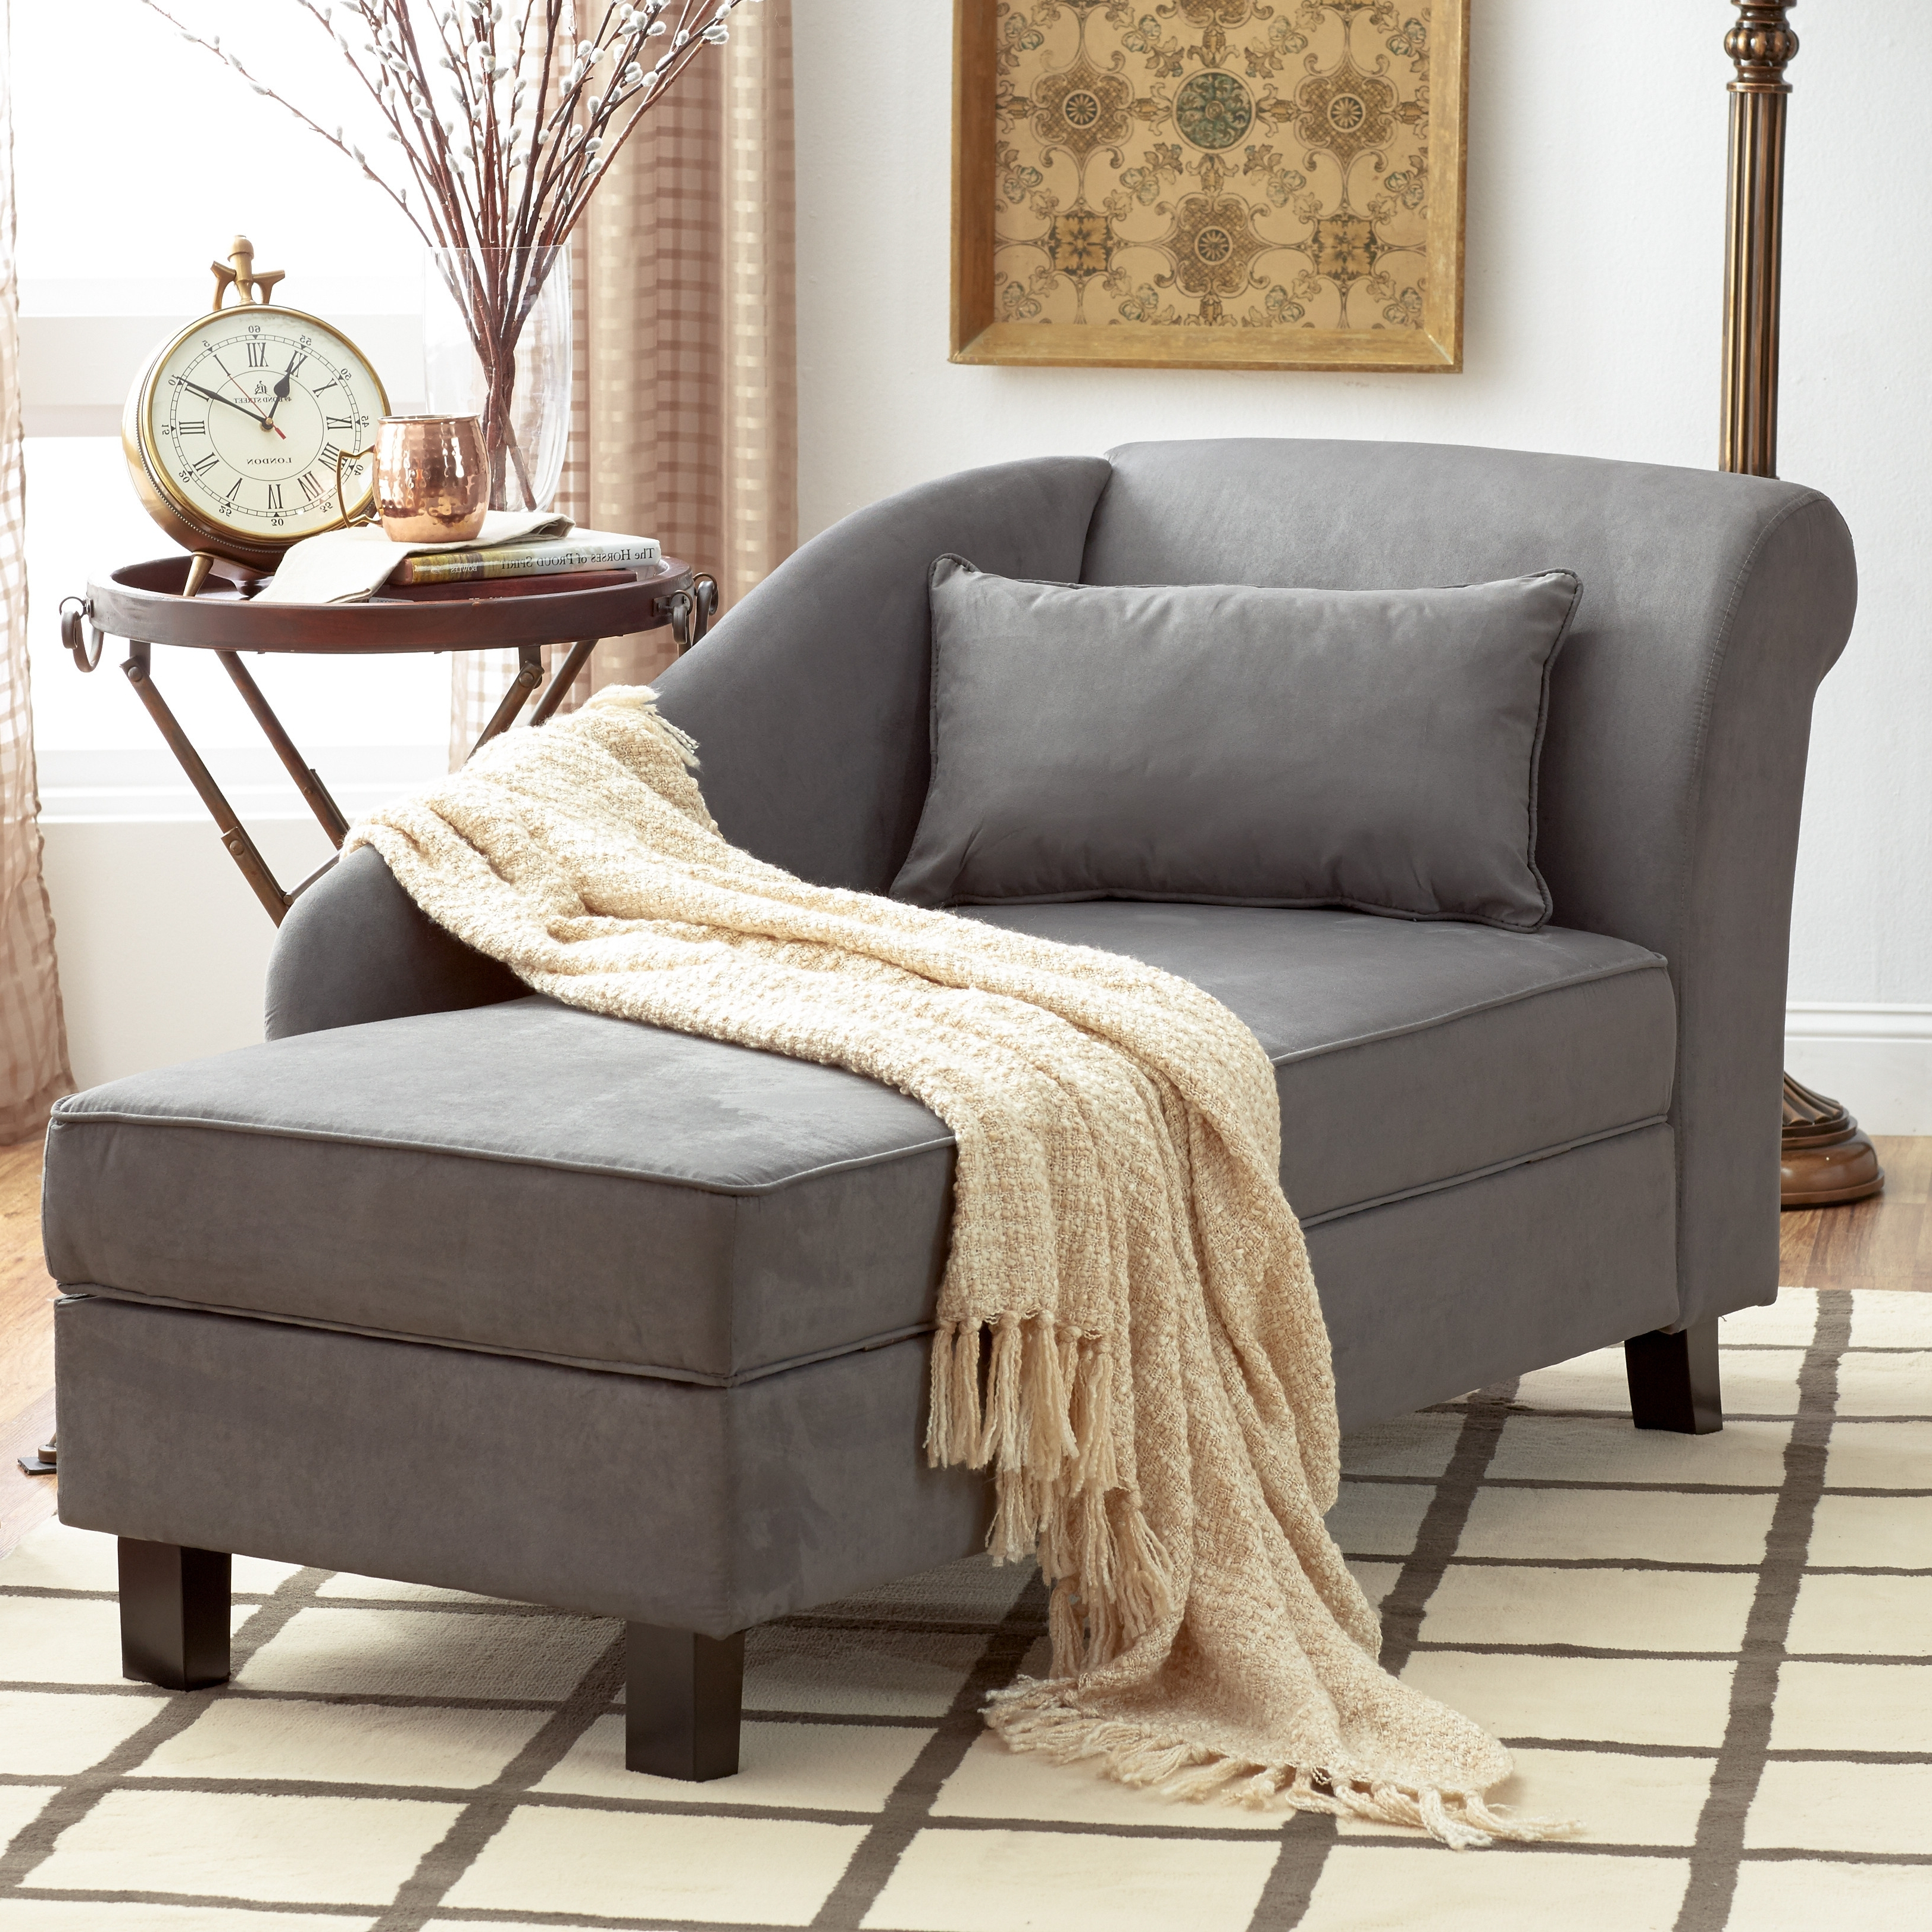 lounge your chaise interior indoor of furniture cheap sale lovely picture idea stunning on chairs in home